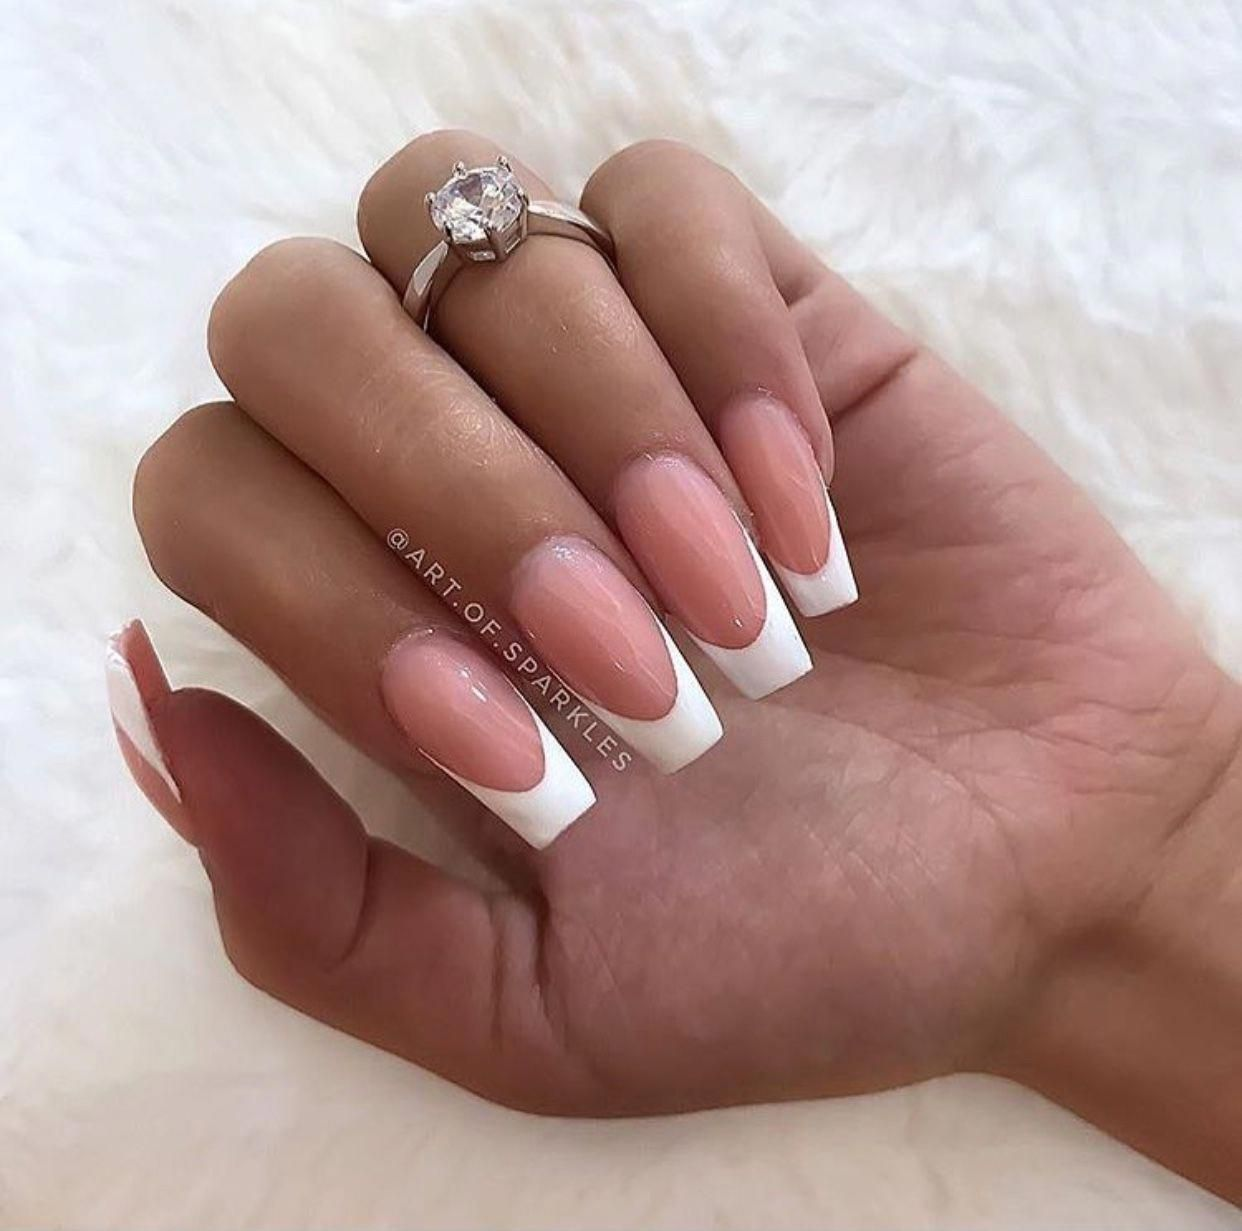 French Nails With Diamonds Tips Frenchnailtipideas French Tip Acrylic Nails White Tip Nails French Tip Nails